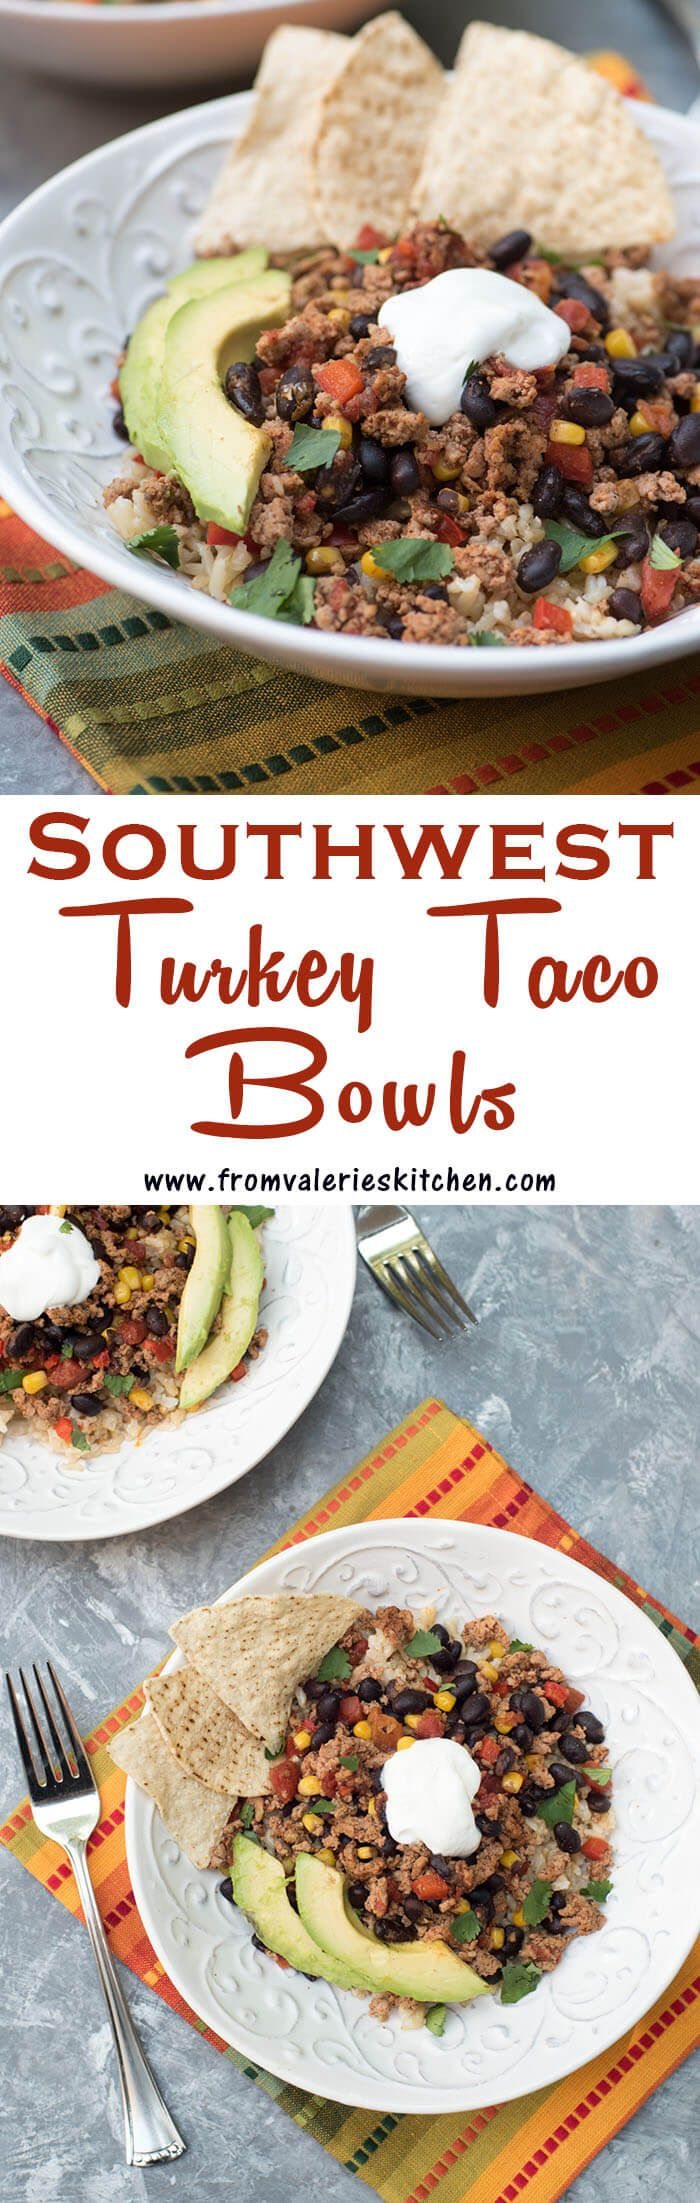 These flavorful Southwest Turkey Taco Bowls are a delicious way to lighten up your menu and you won't believe how quick and easy they are to prepare!